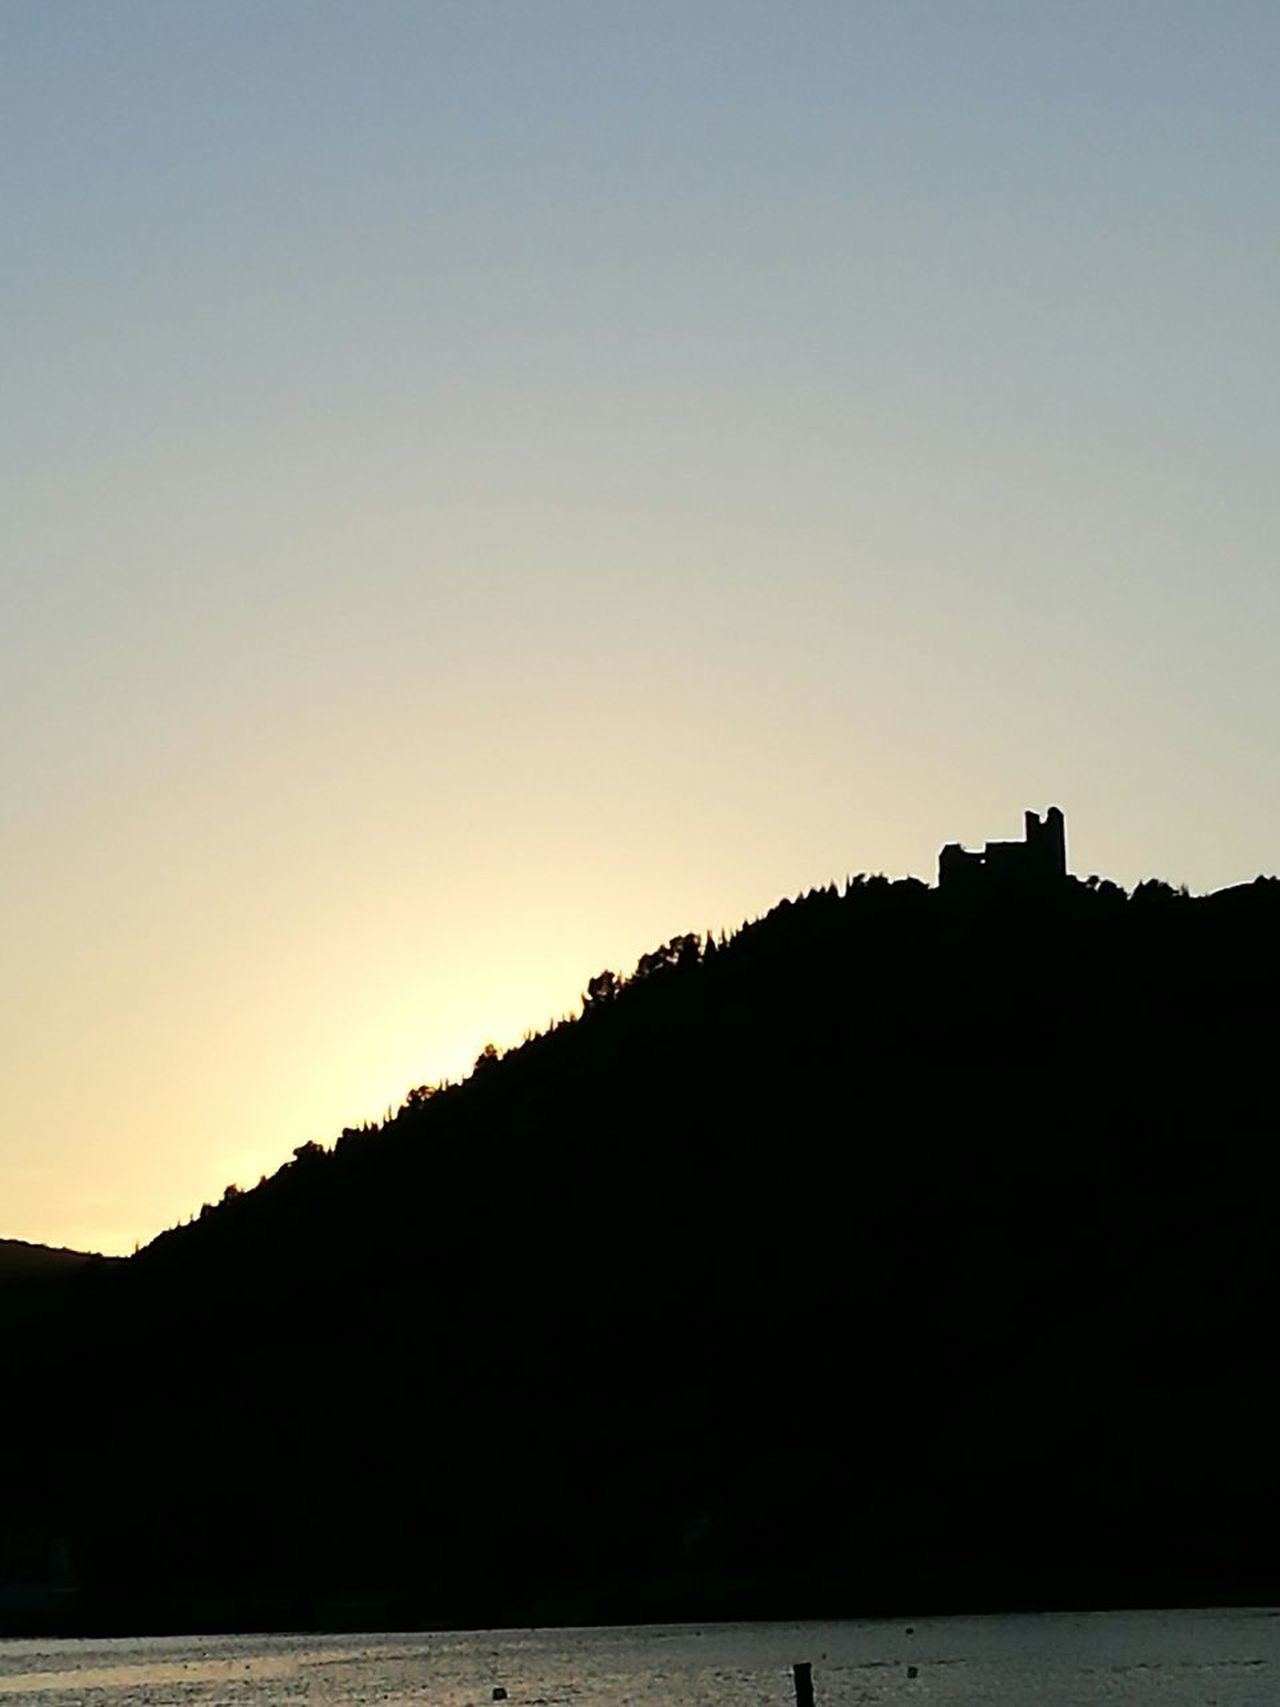 Qui si sogna. Silhouette Sunset No People Nature Water Outdoors Tranquility Clear Sky My Favorite Place Myparadise